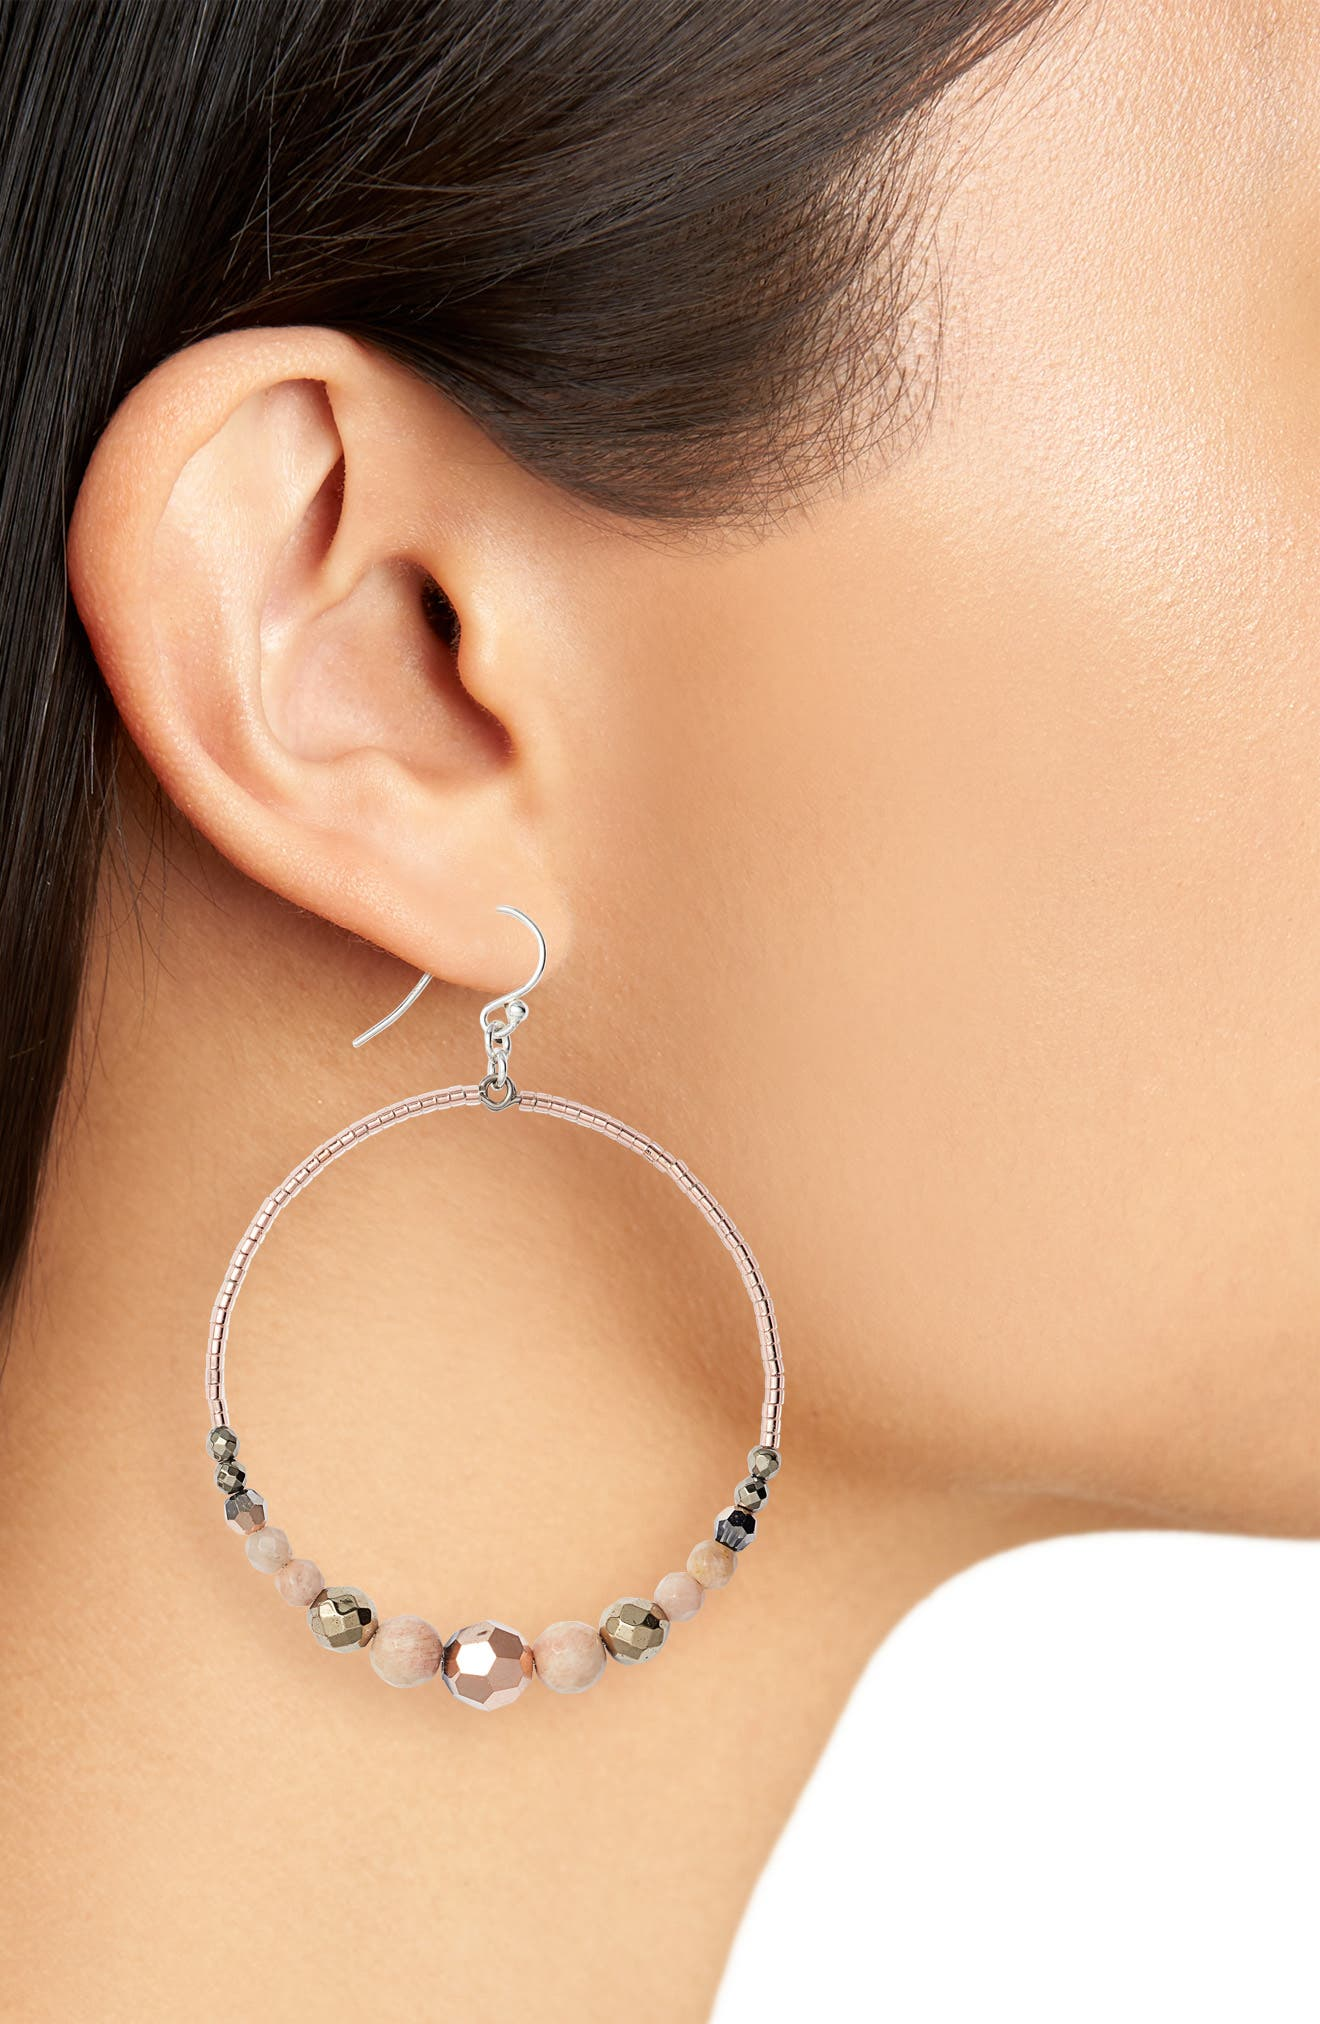 Semiprecious Stone Frontal Hoop Earrings,                             Alternate thumbnail 2, color,                             SUNSTONE MIX